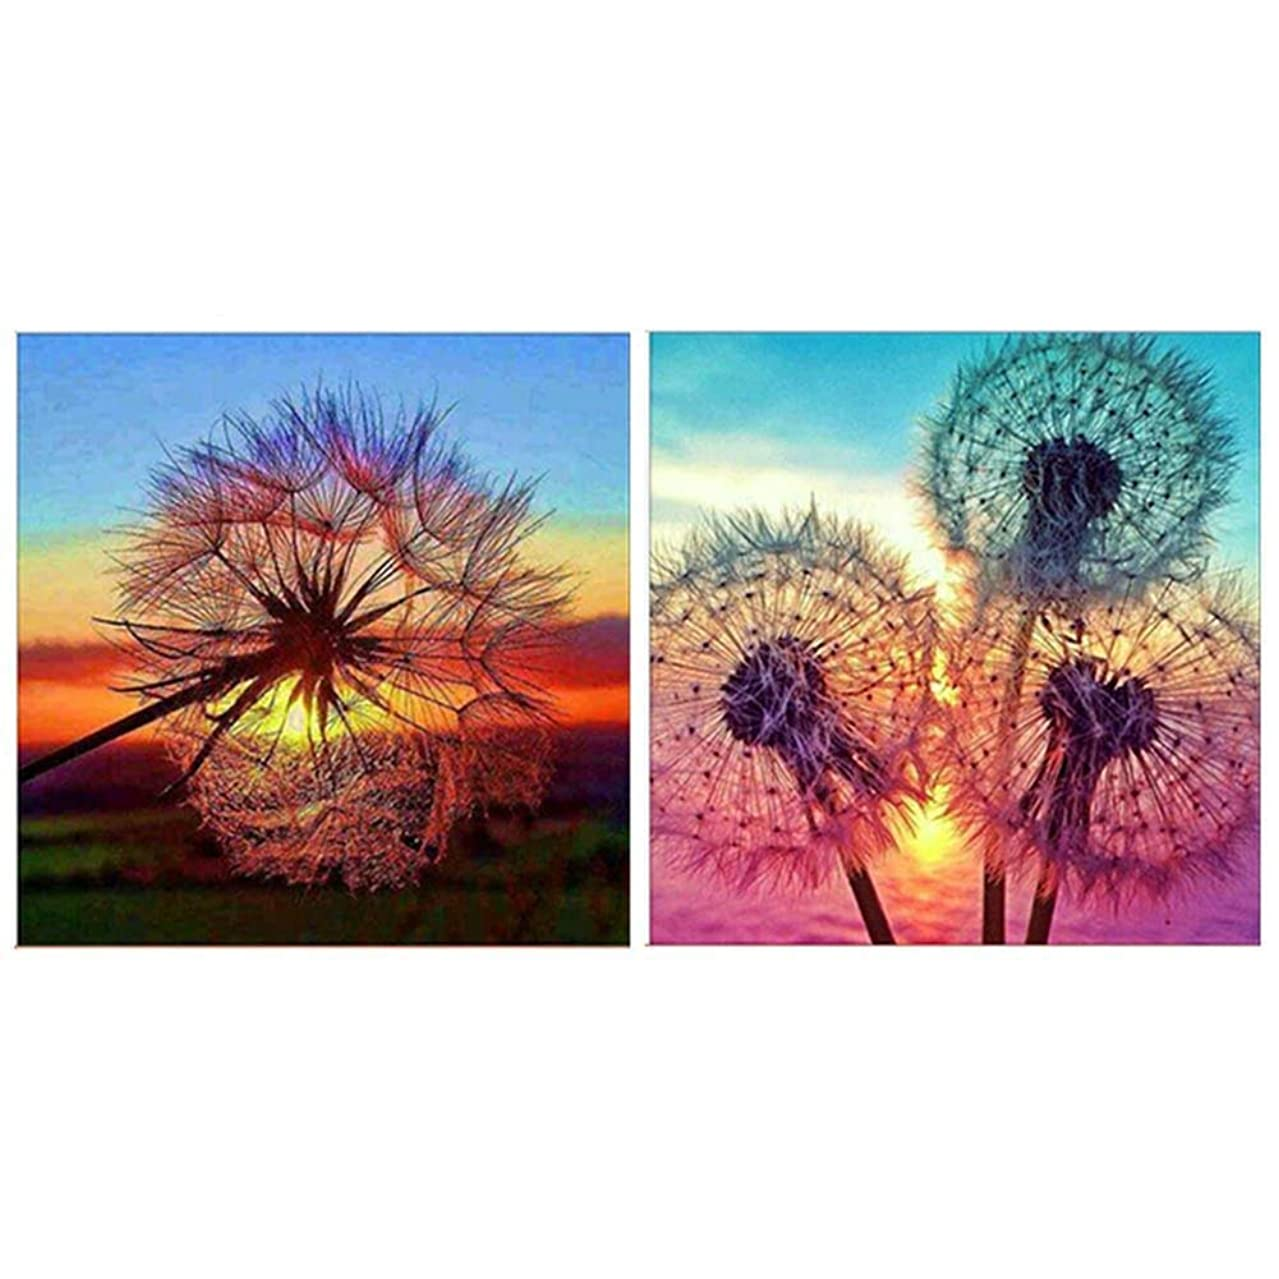 2 Pack 5D DIY Dandelion Diamond Painting Kits Wall Stickers Crystal Full Drill Diamond Painting Kit Embroidery Paintings, 12